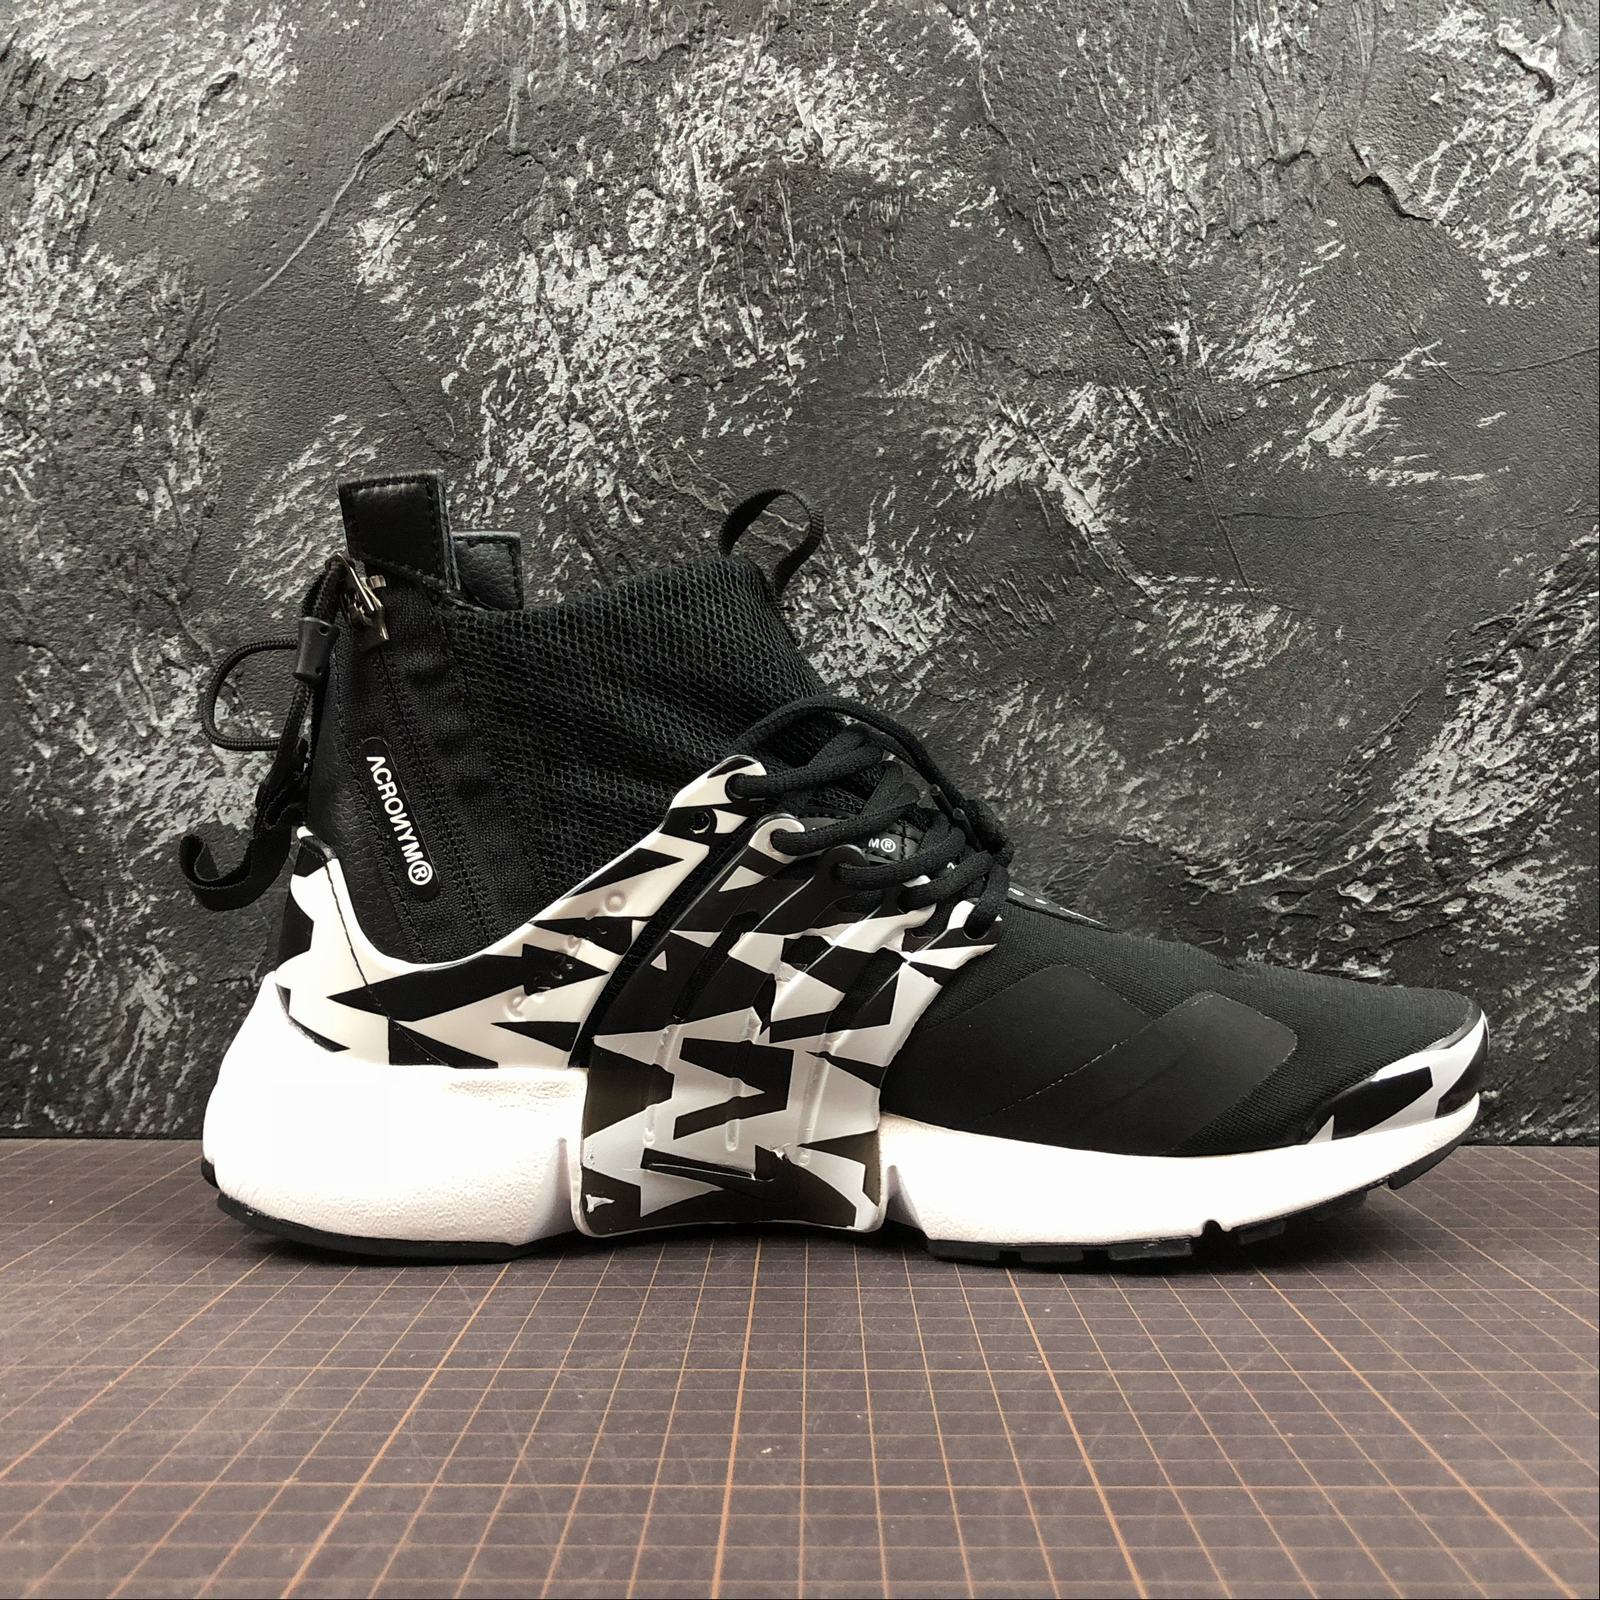 Мужские кроссовки Nike Air Presto Mid Acronym Men Black,White,Black - фото №2